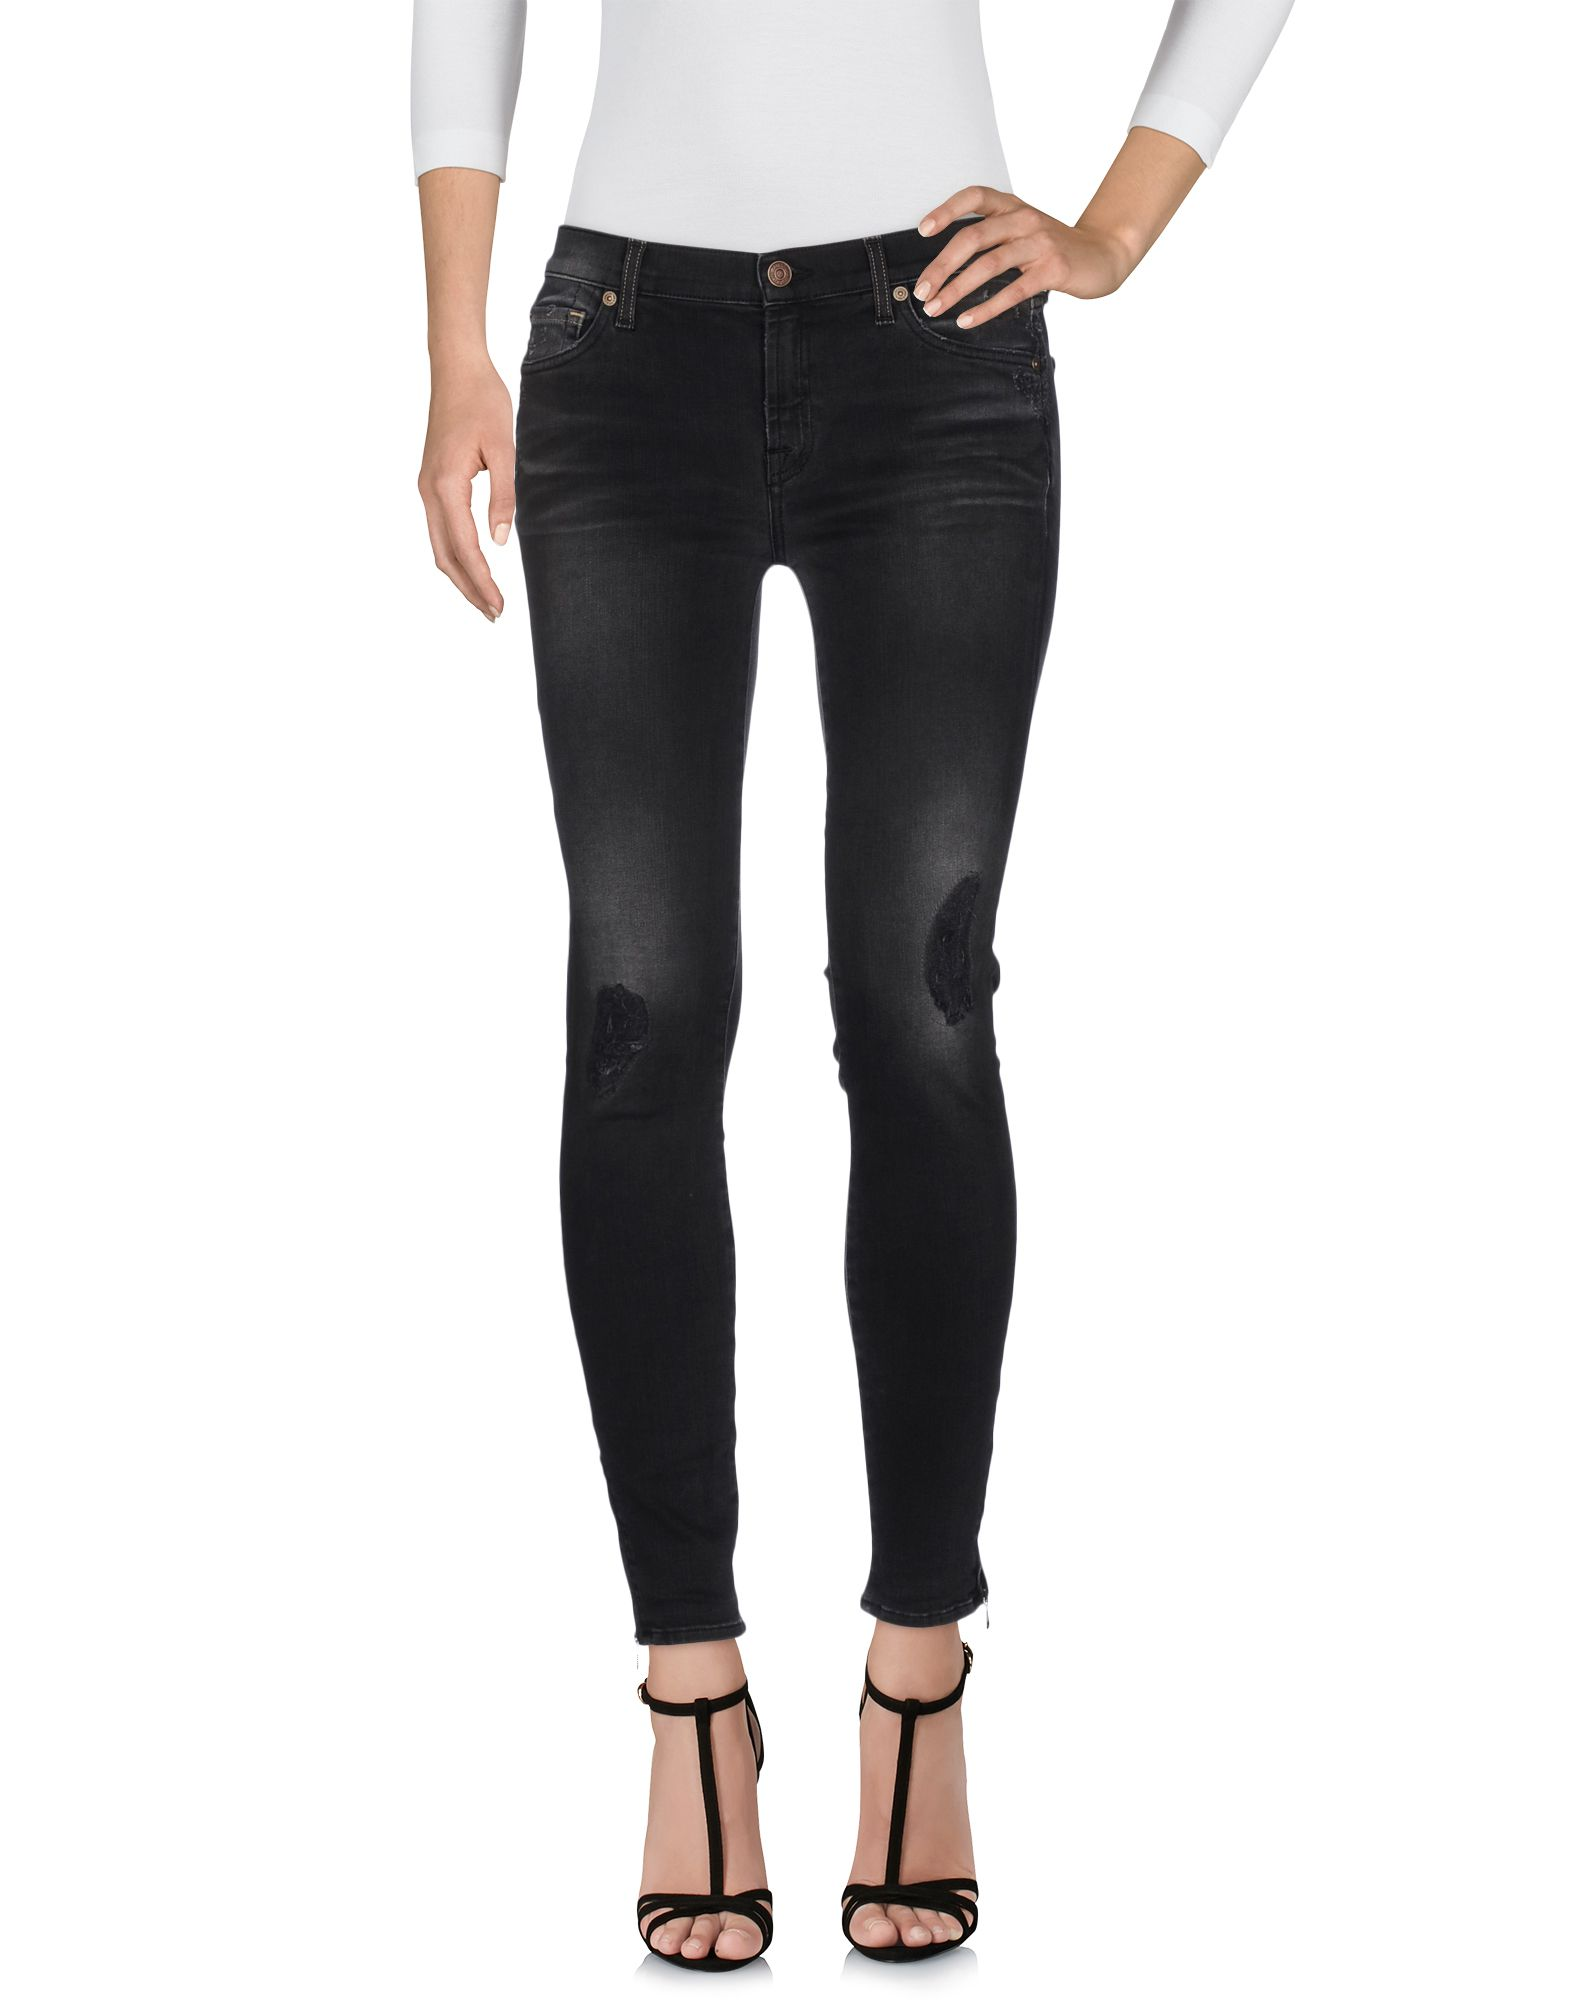 Pantaloni Jeans 7 For All Mankind Donna - Acquista online su 1kvRflIESc